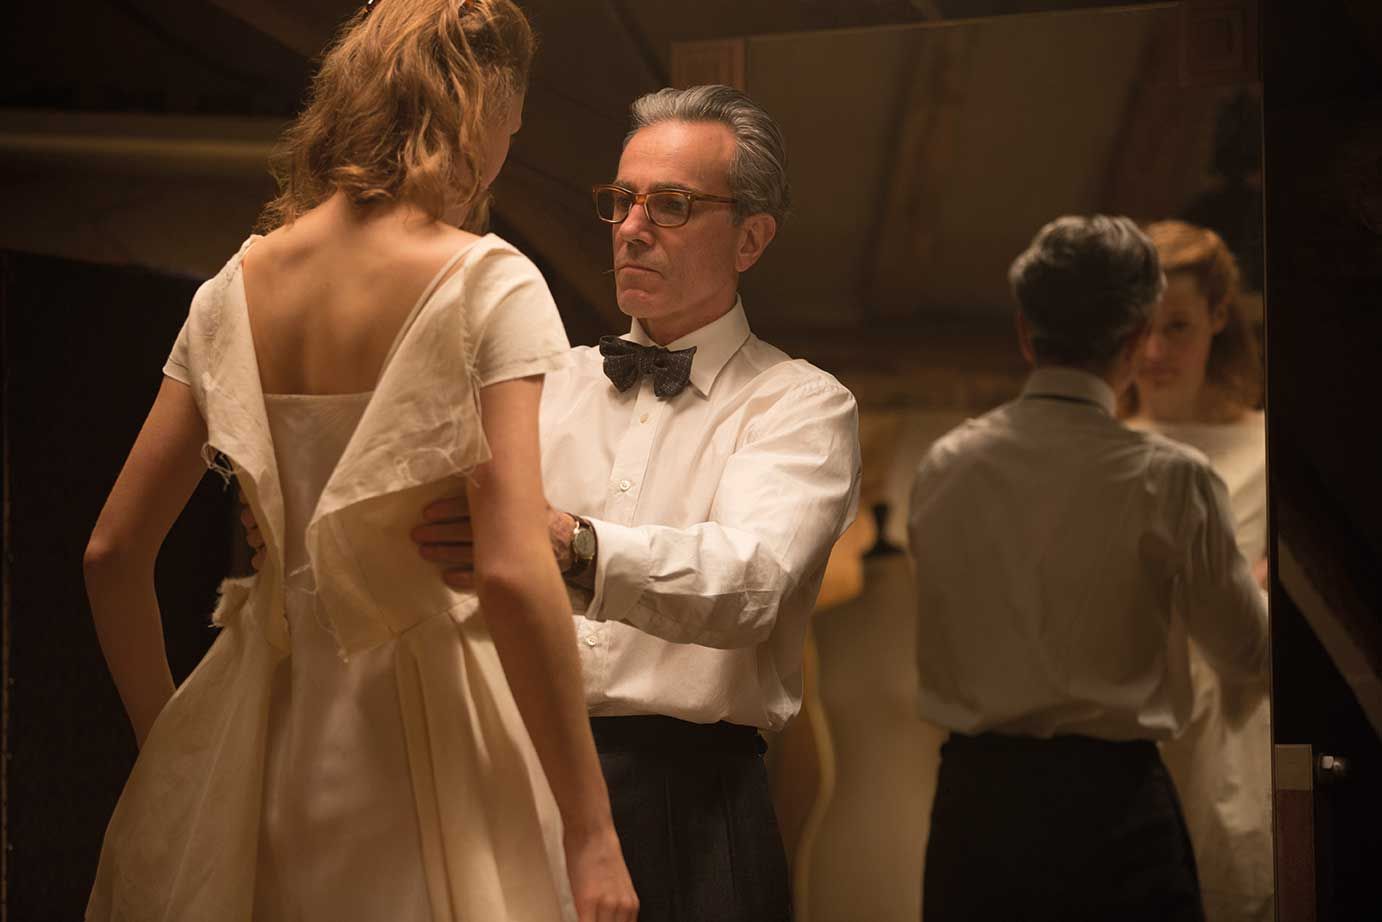 Daniel Day-Lewis on set with Vicky Krieps.